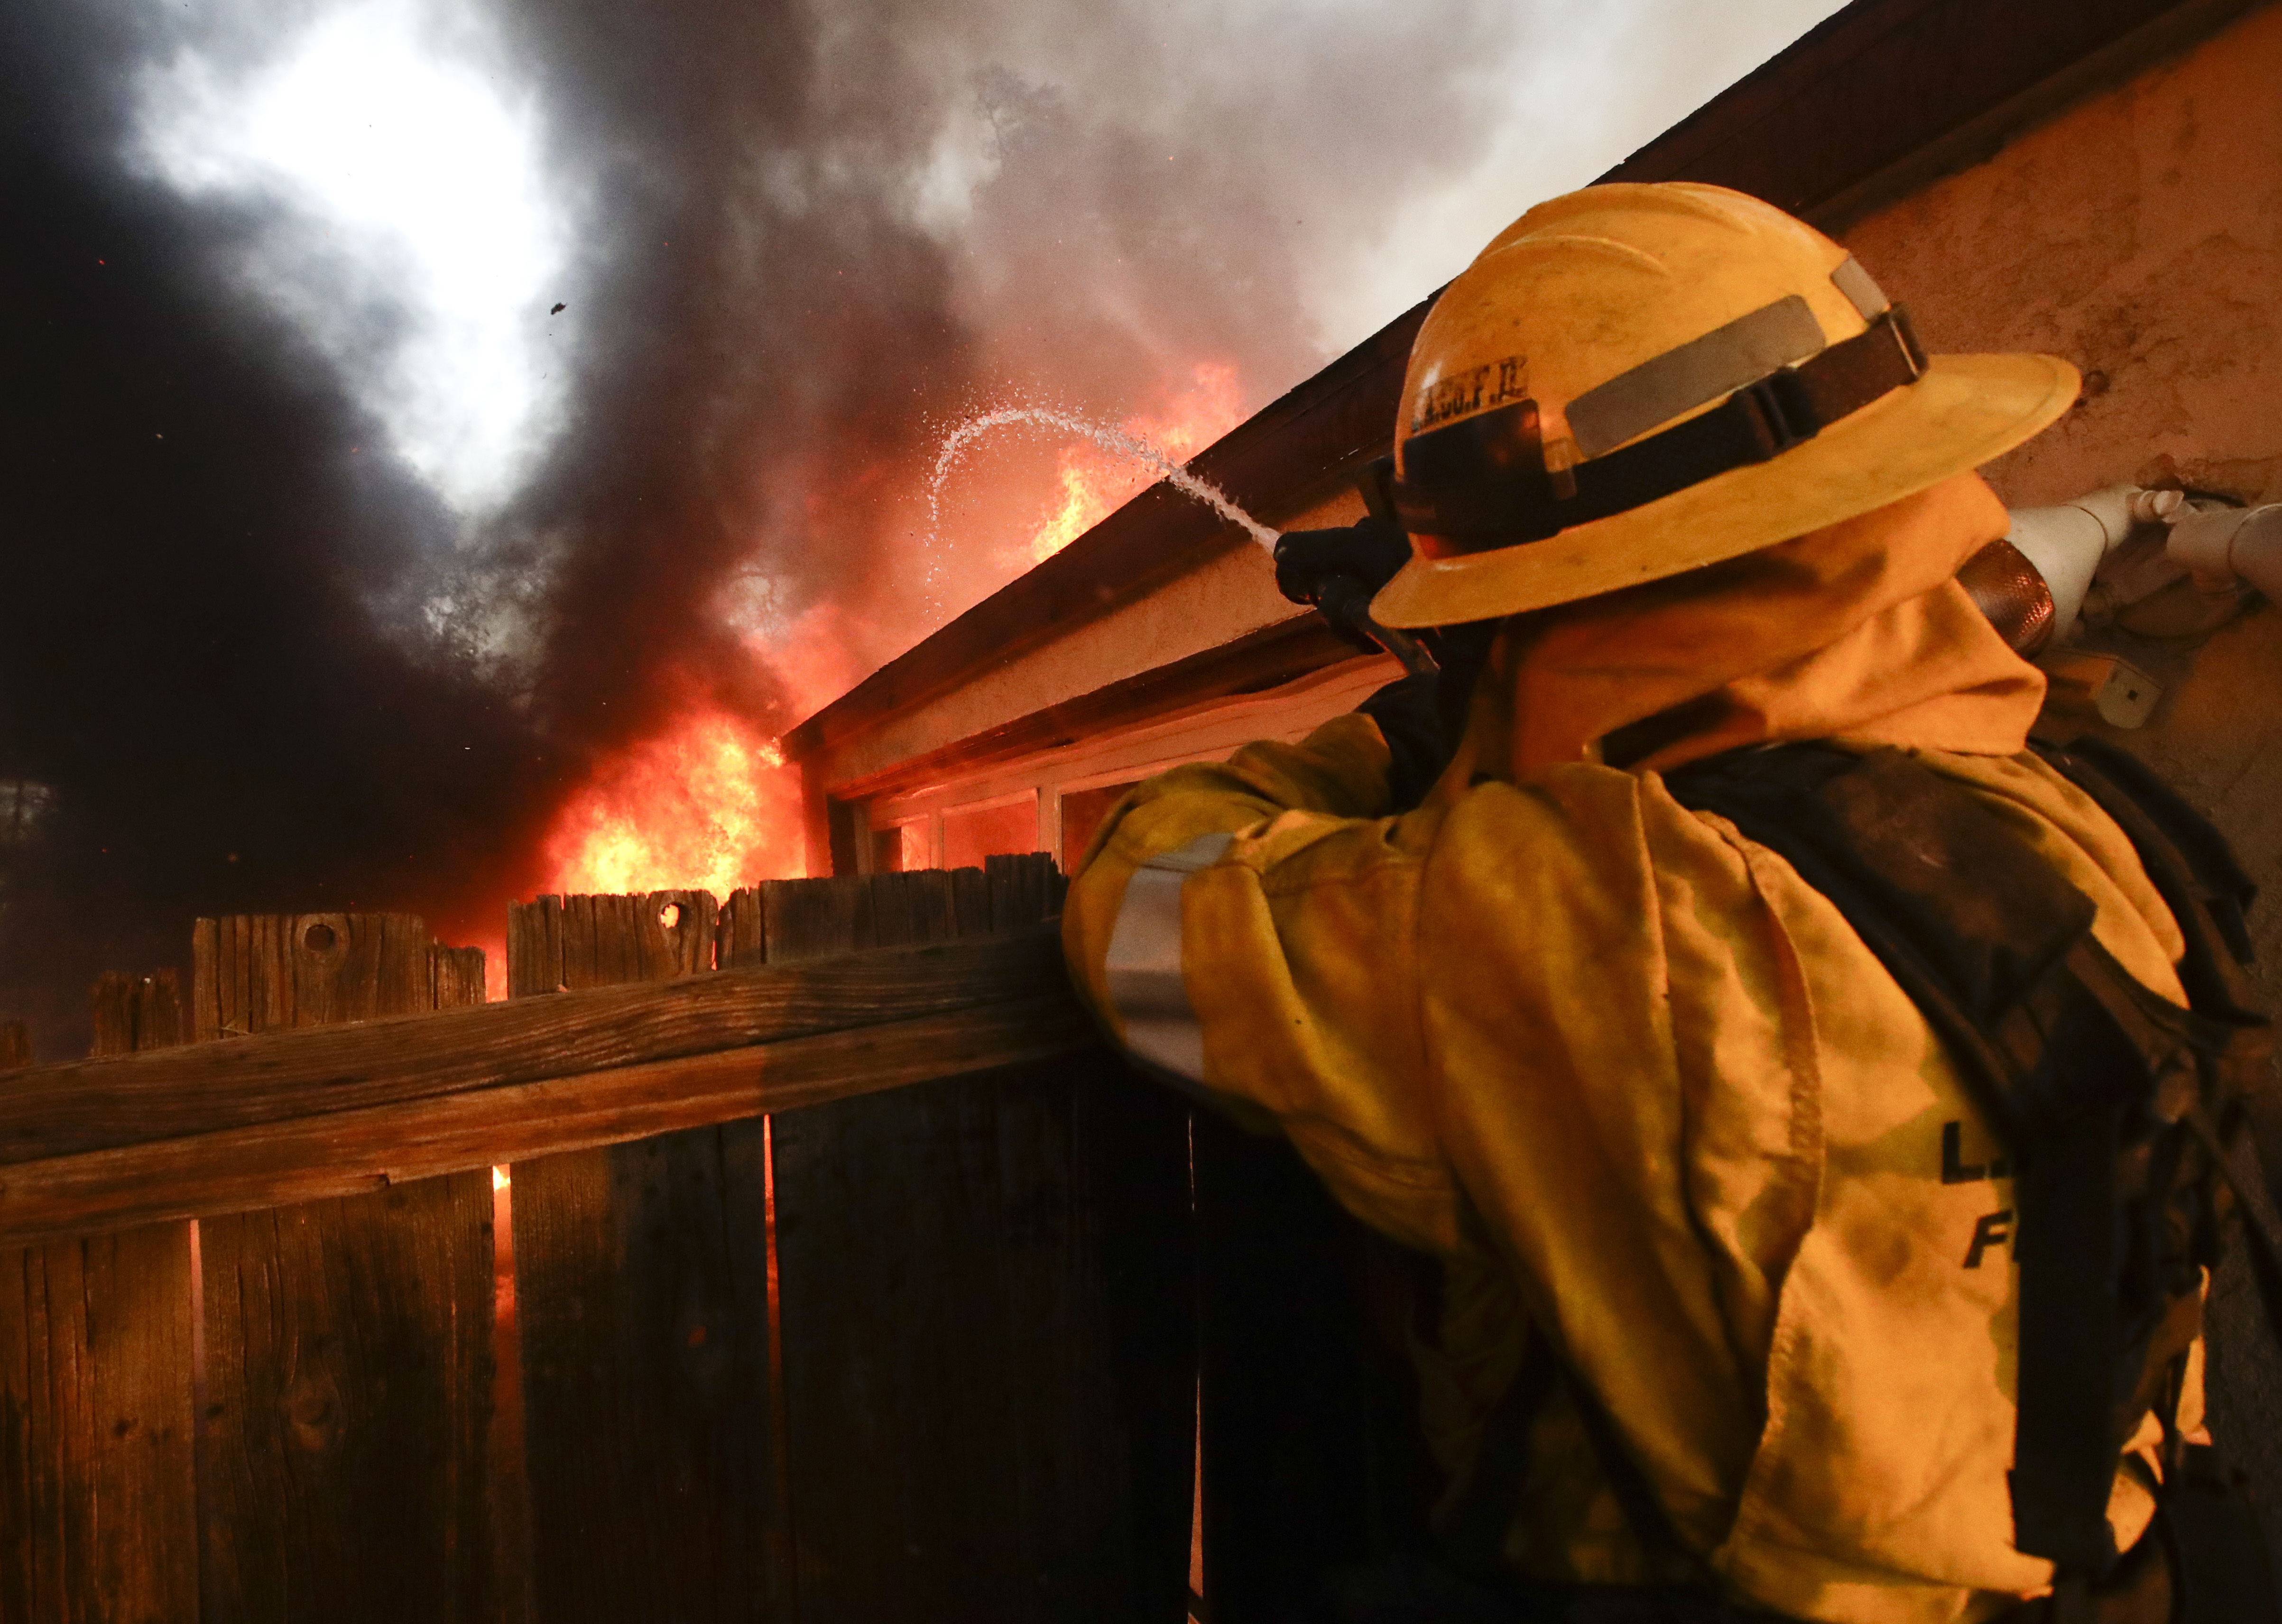 A Los Angeles County firefighter puts water on a burning house during a wildfire in the Lake View Terrace area of Los Angeles Tuesday, Dec. 5, 2017. Ferocious winds in Southern California have whipped up explosive wildfires, burning a psychiatric hospital and scores of other structures. Tens of thousands of people have been ordered evacuated. (AP Photo/Chris Carlson)